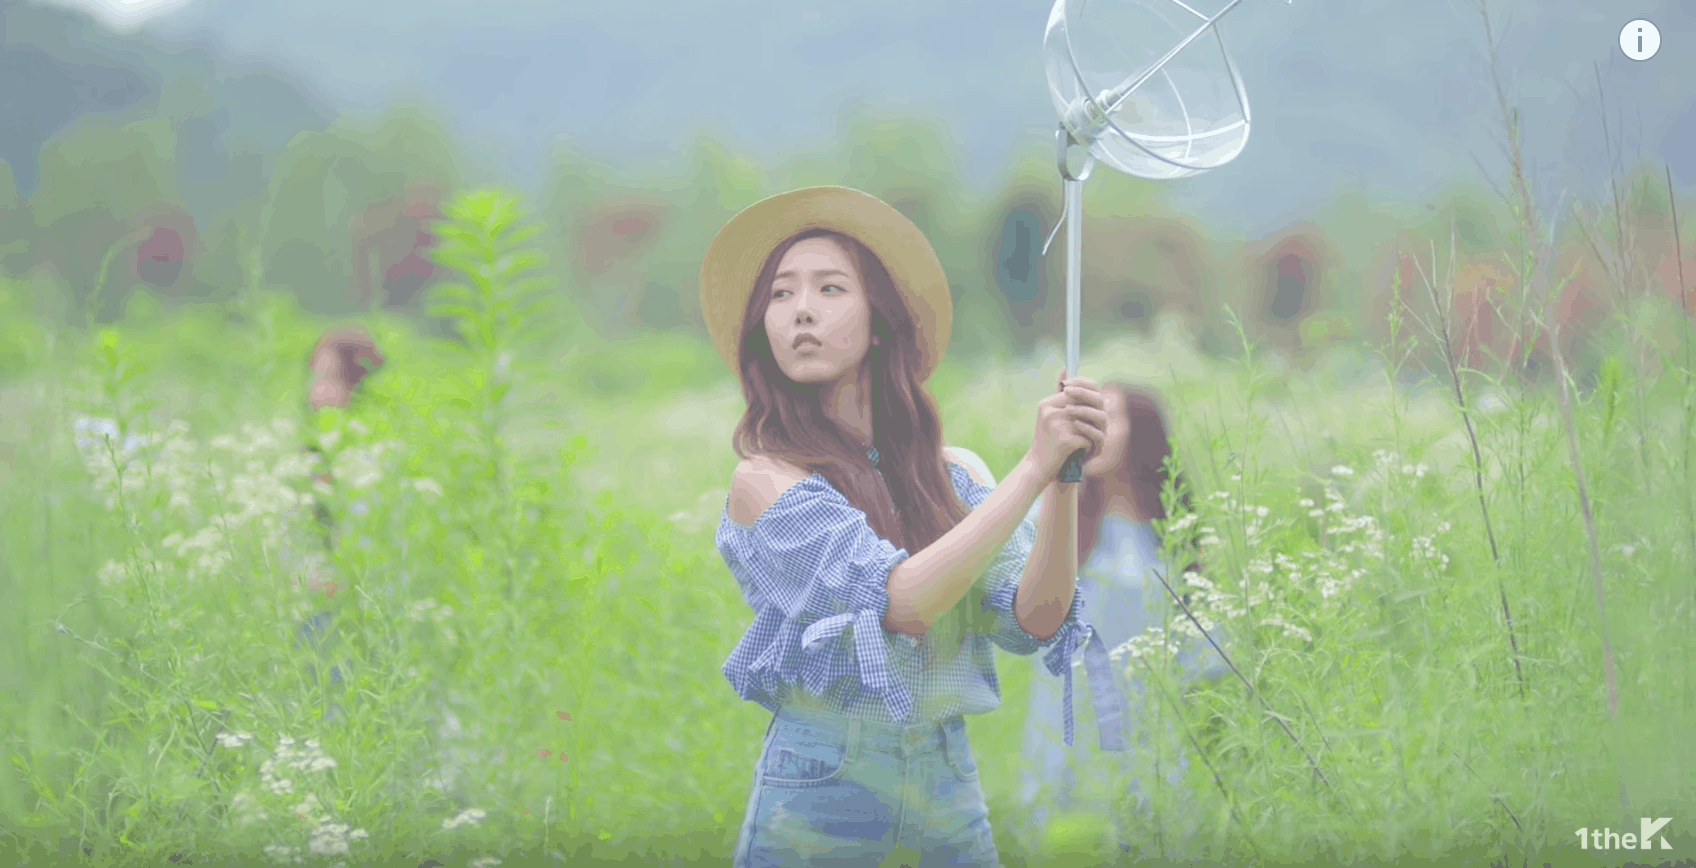 GFRIEND Love Whisper music video: Band member wears a blue off-shoulder ruffle top and jeans with wide brim straw hat